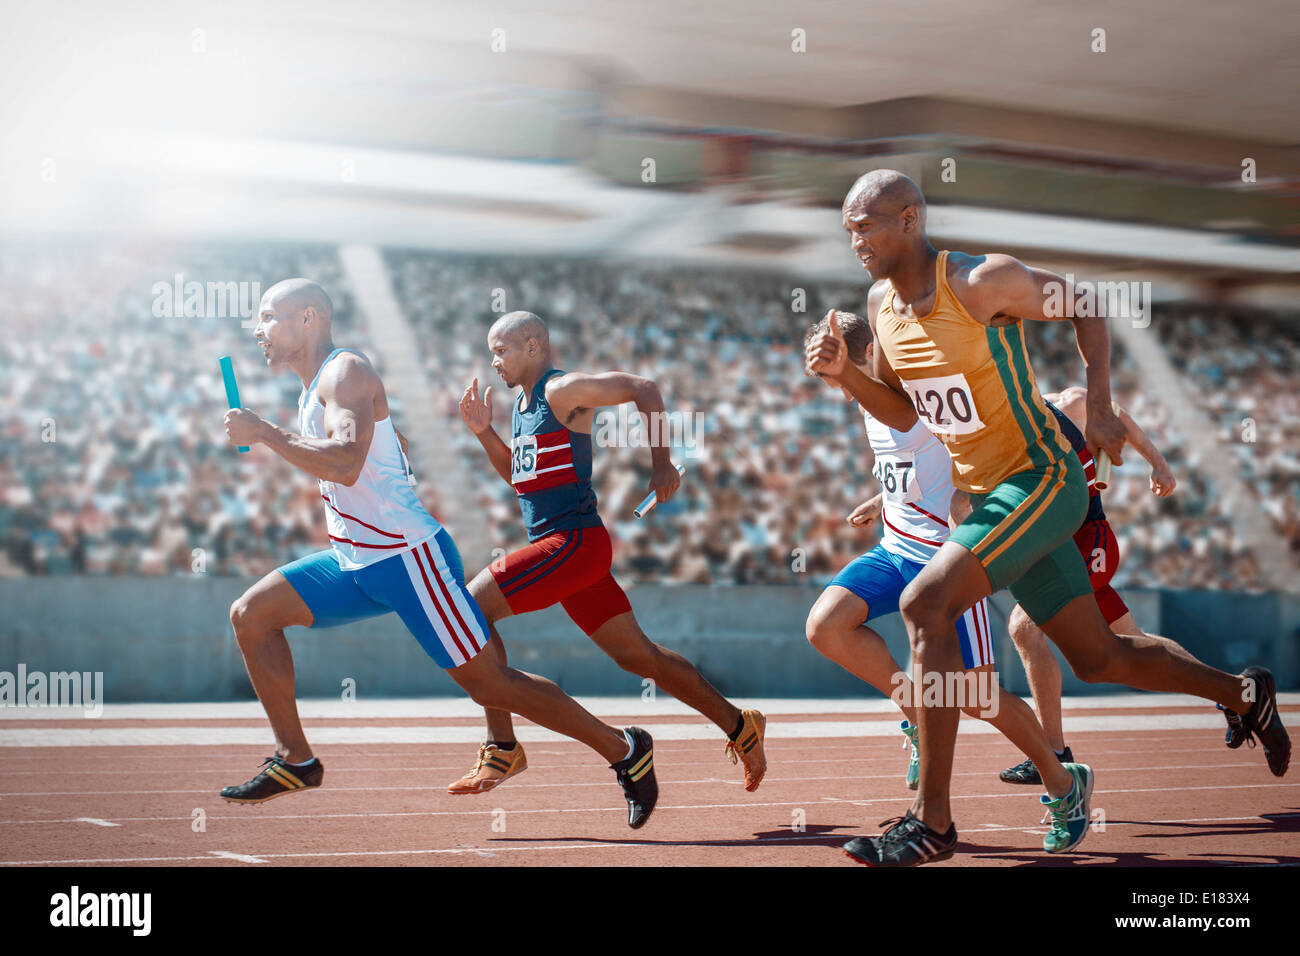 Relay runners racing on track Stock Photo